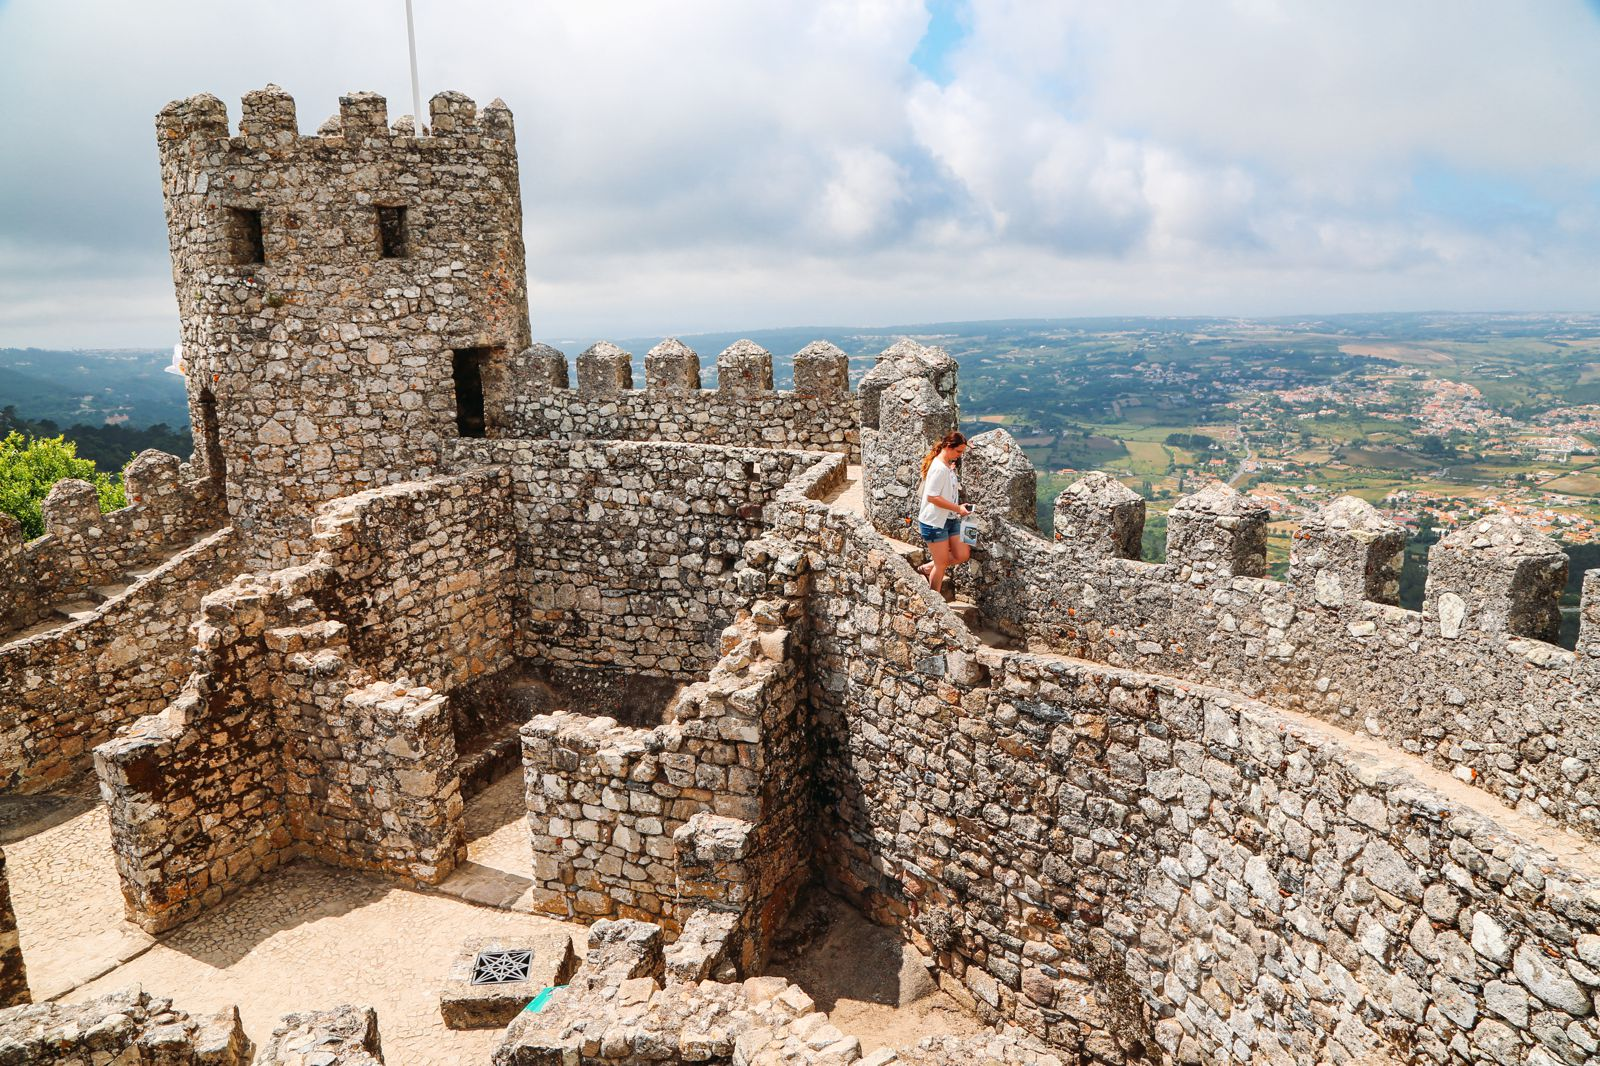 The Moorish Castle, Palace of Sintra And Pena Park – 3 Beautiful Places To See In Sintra, Portugal (6)